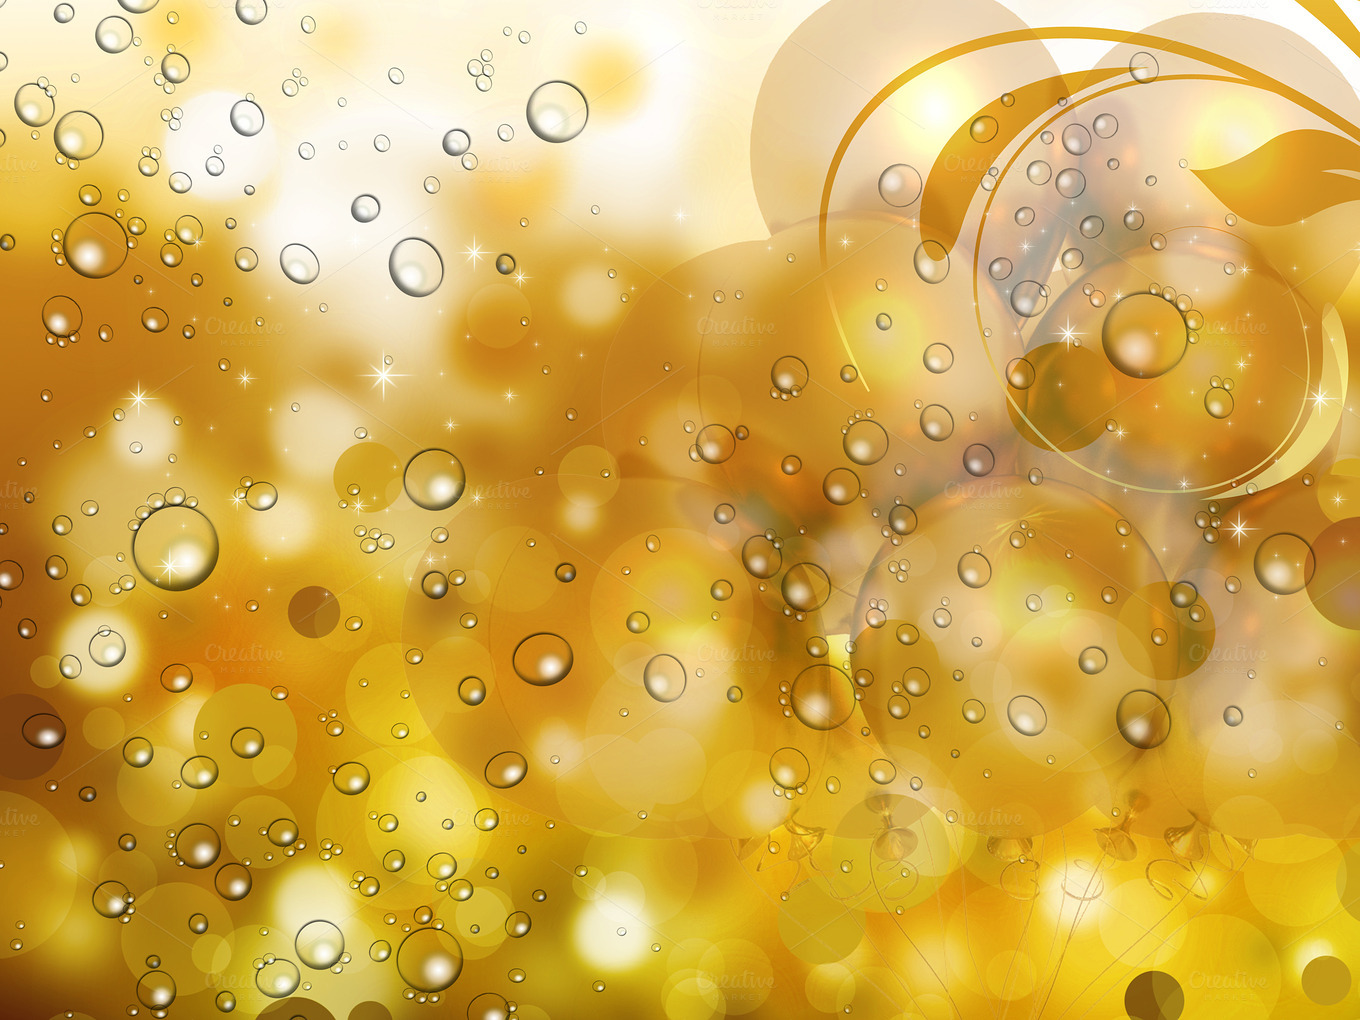 golden abstract background Abstract Photos on Creative